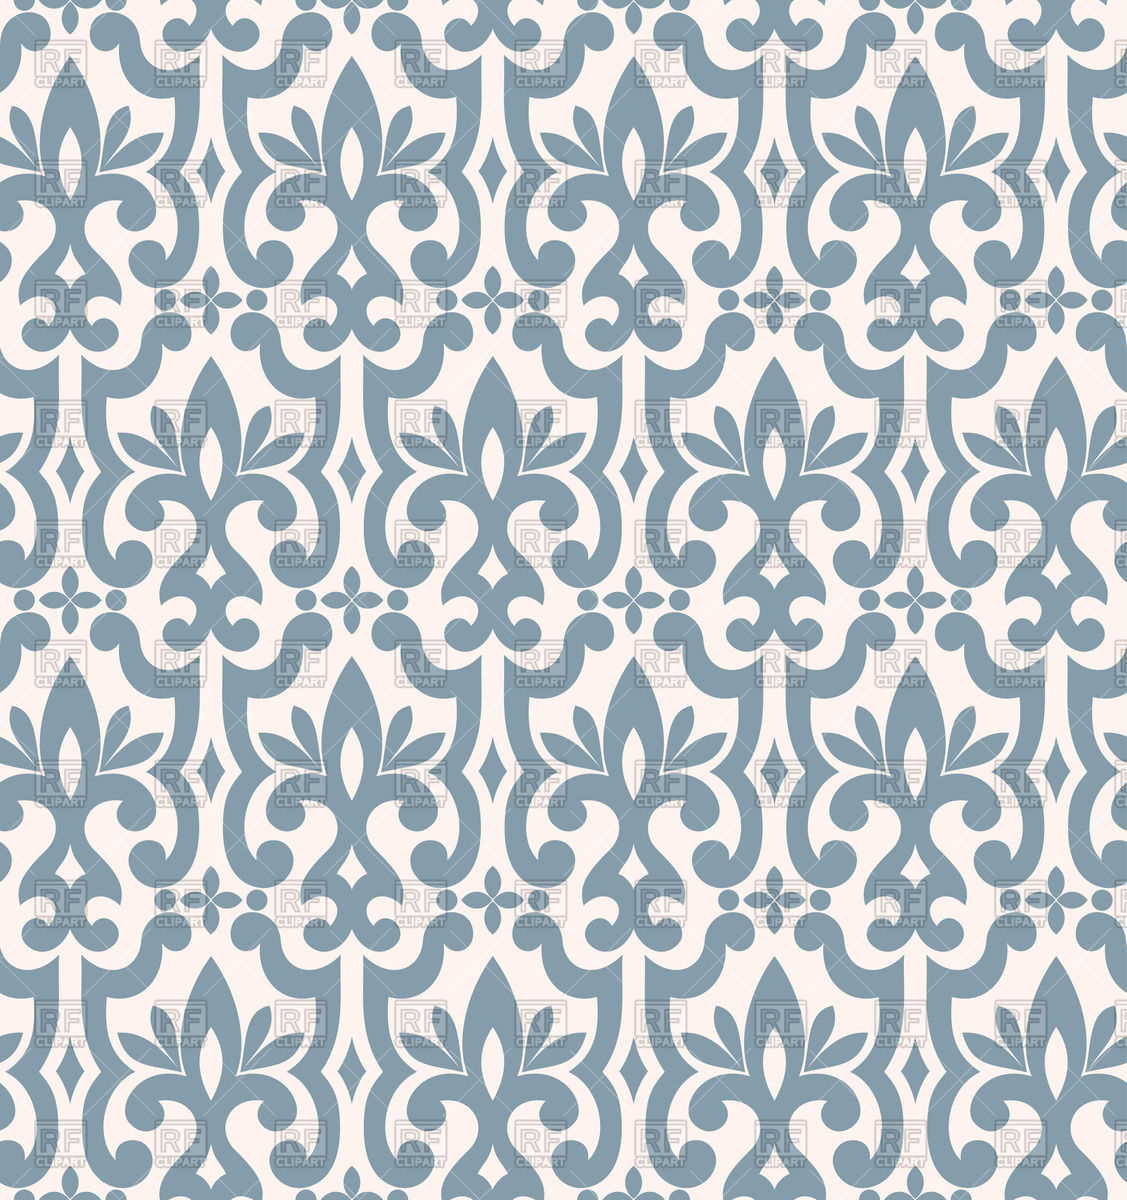 Clipart royalty free page background png transparent download Free Damask Backgrounds Clipart, Free Download Clipart and Images ... png transparent download